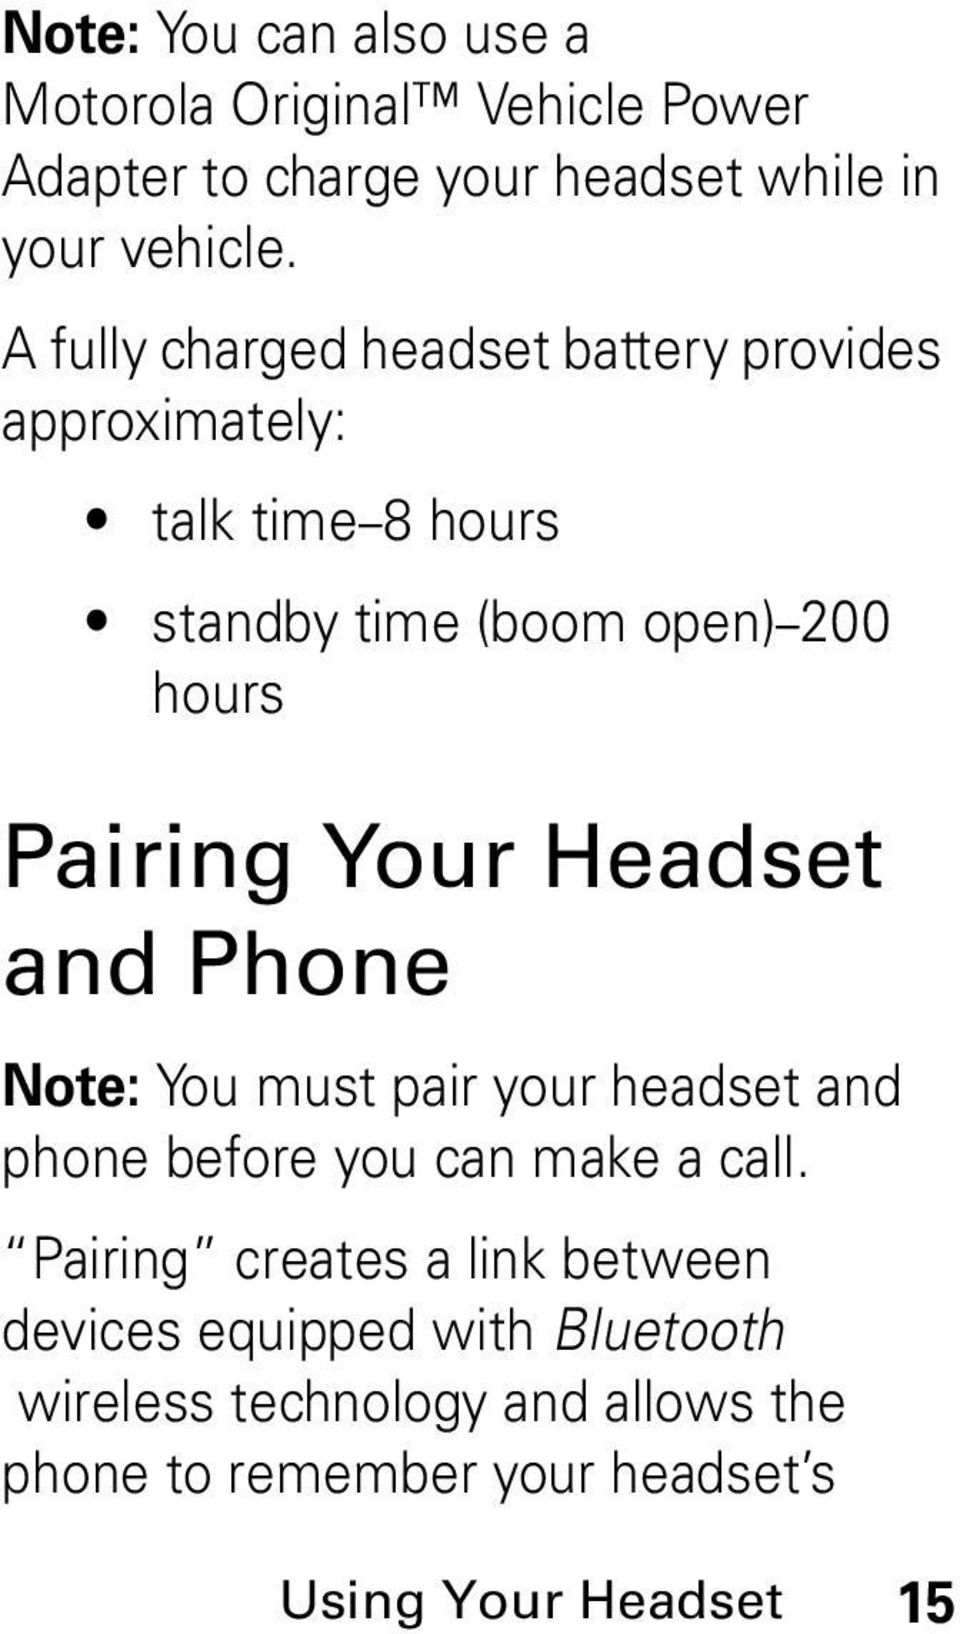 Your Headset and Phone Note: You must pair your headset and phone before you can make a call.